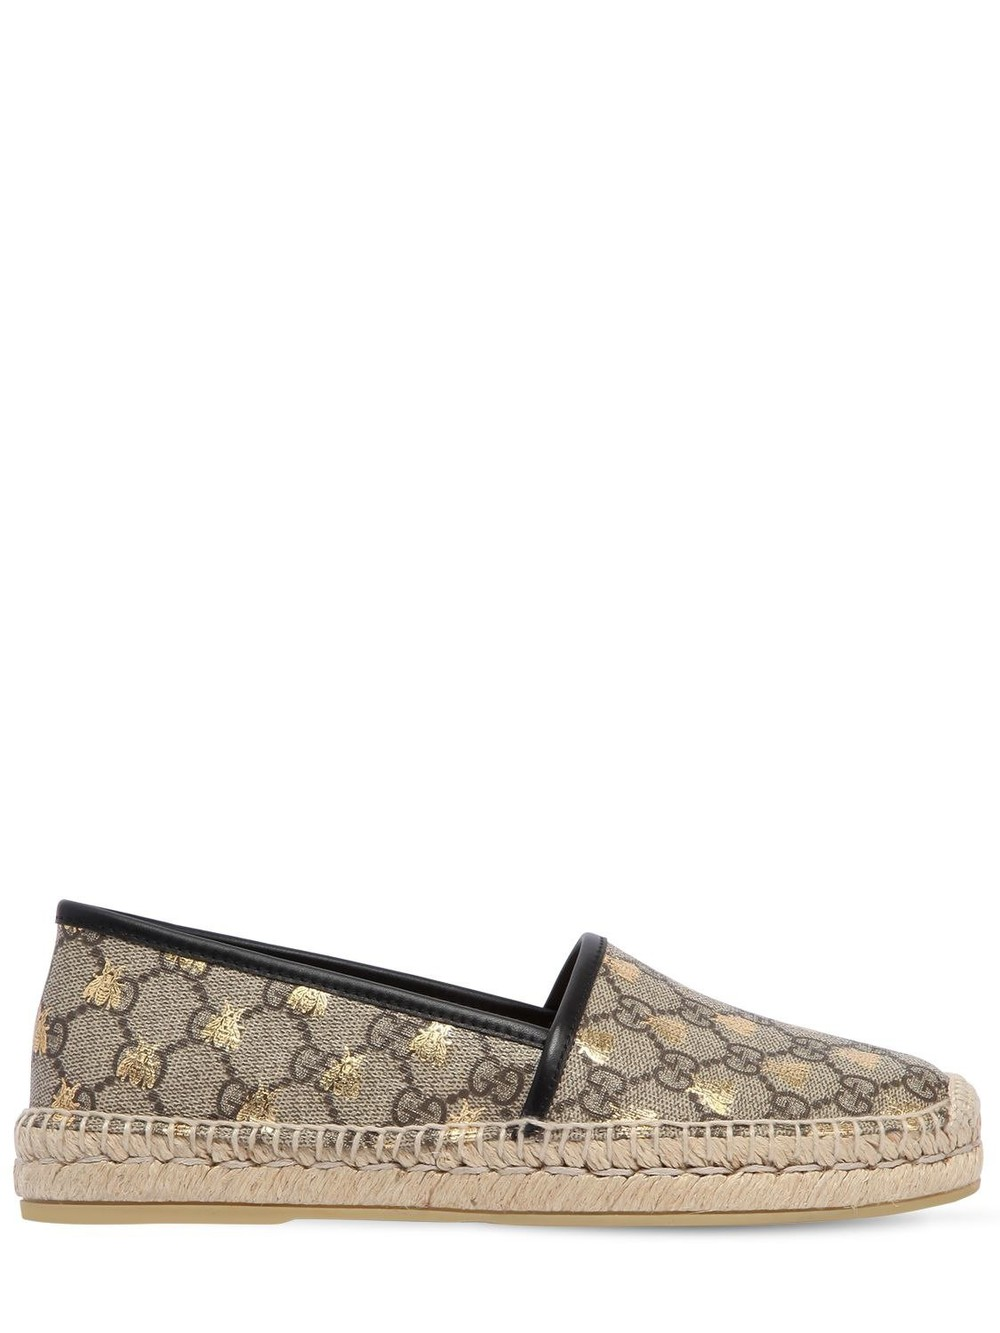 GUCCI 20mm Pilar Gg Supreme Canvas Espadrilles in beige / beige